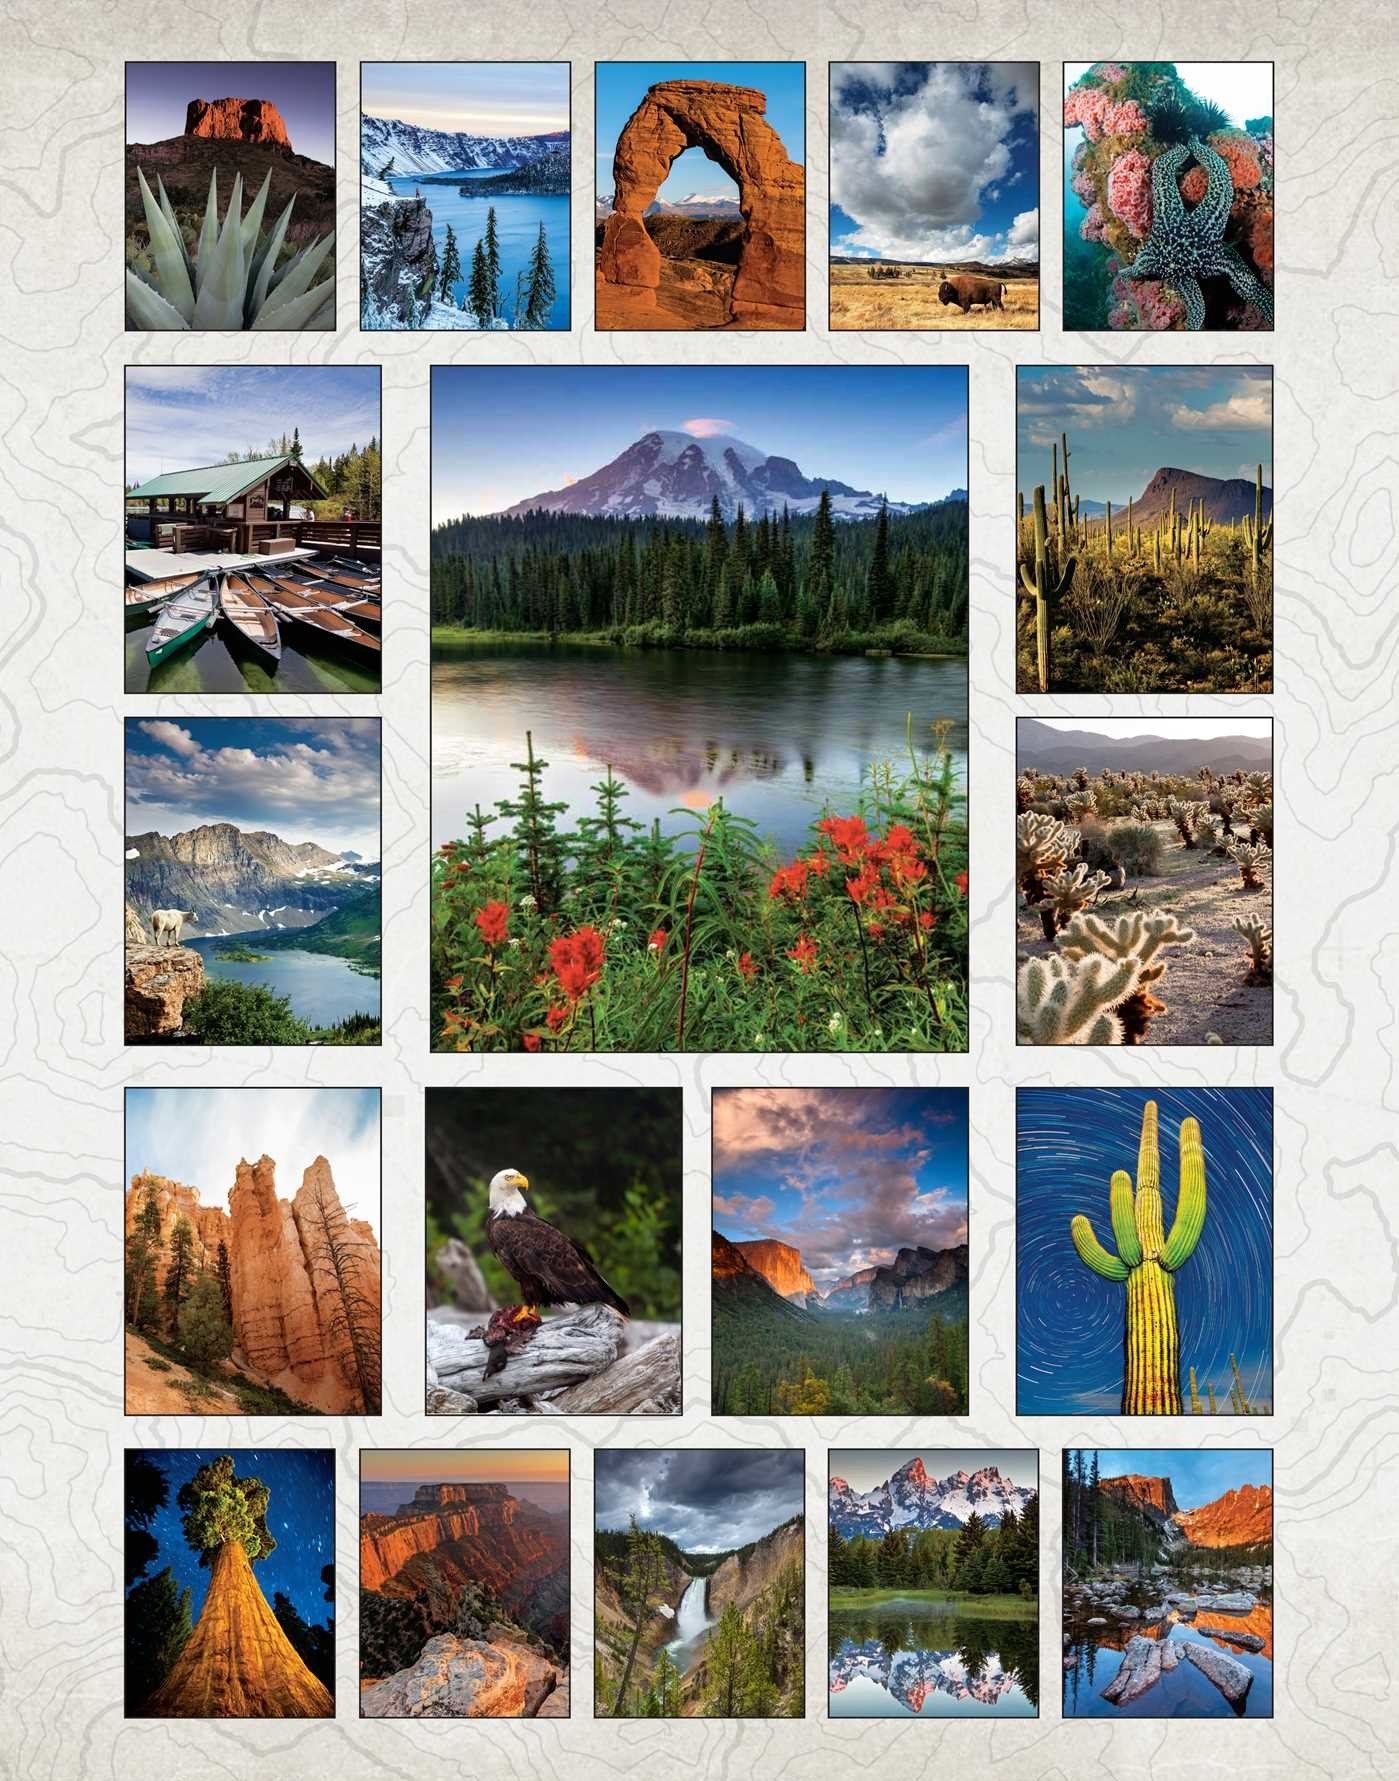 The coloring book poster -  The National Parks Poster Coloring Book 9781608879595 In08